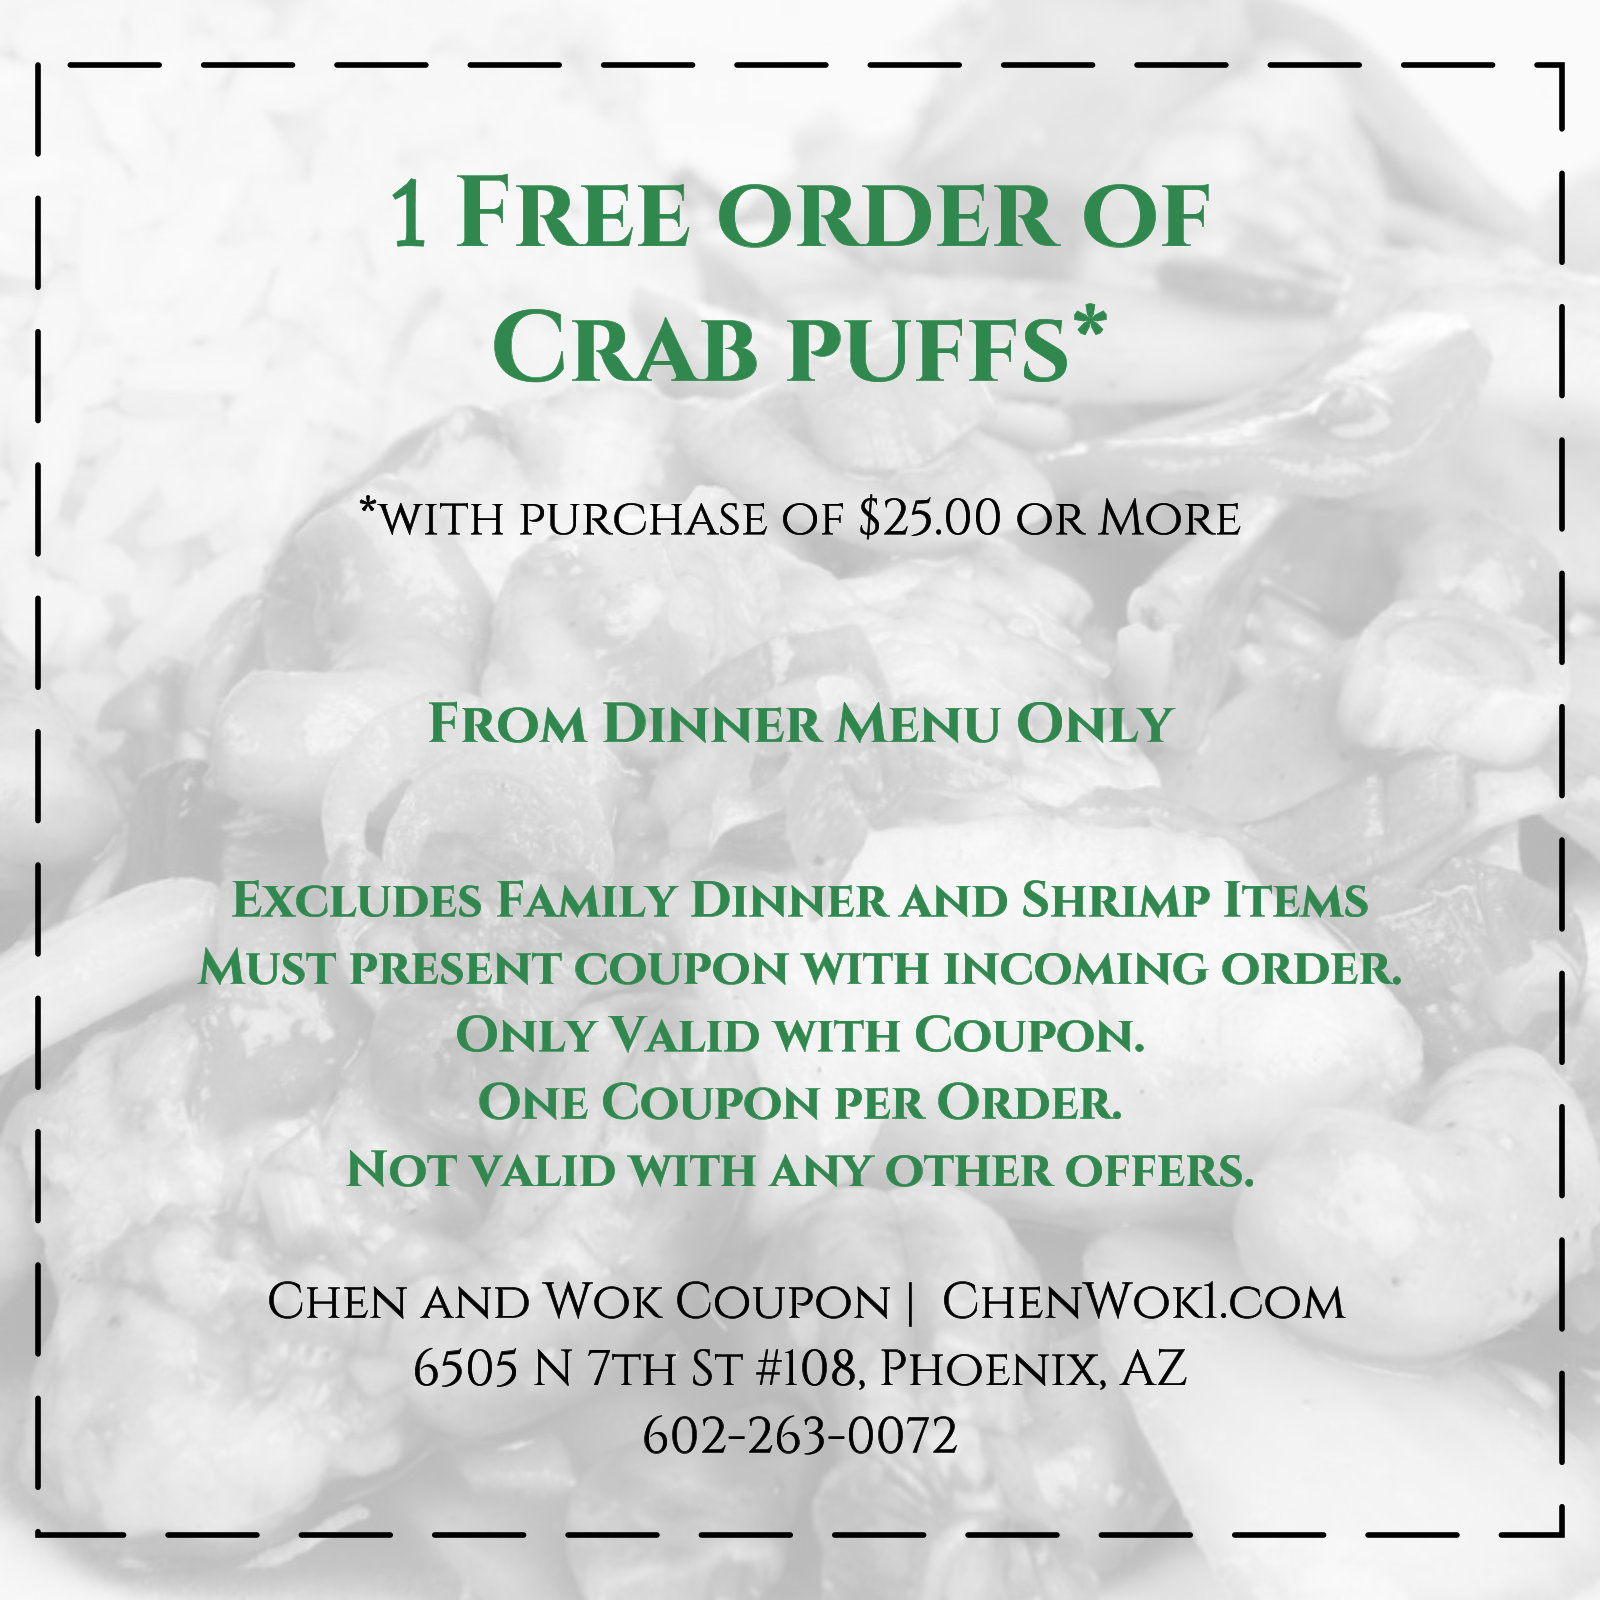 Chen and Wok Coupon Free Crab Puffs